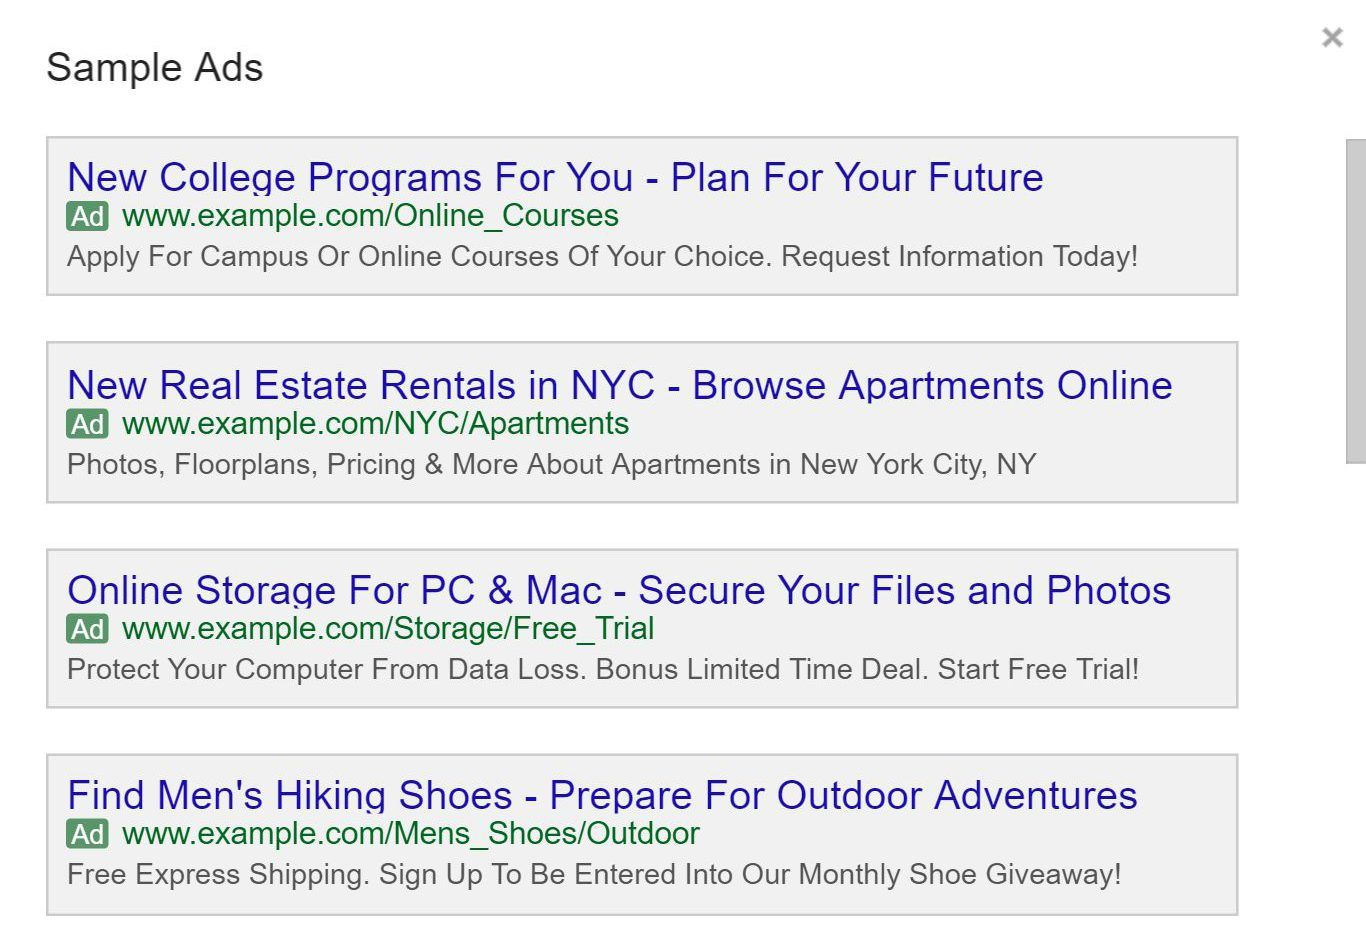 Google Has Updated The Adwords Ad Preview Tool For Expanded Text